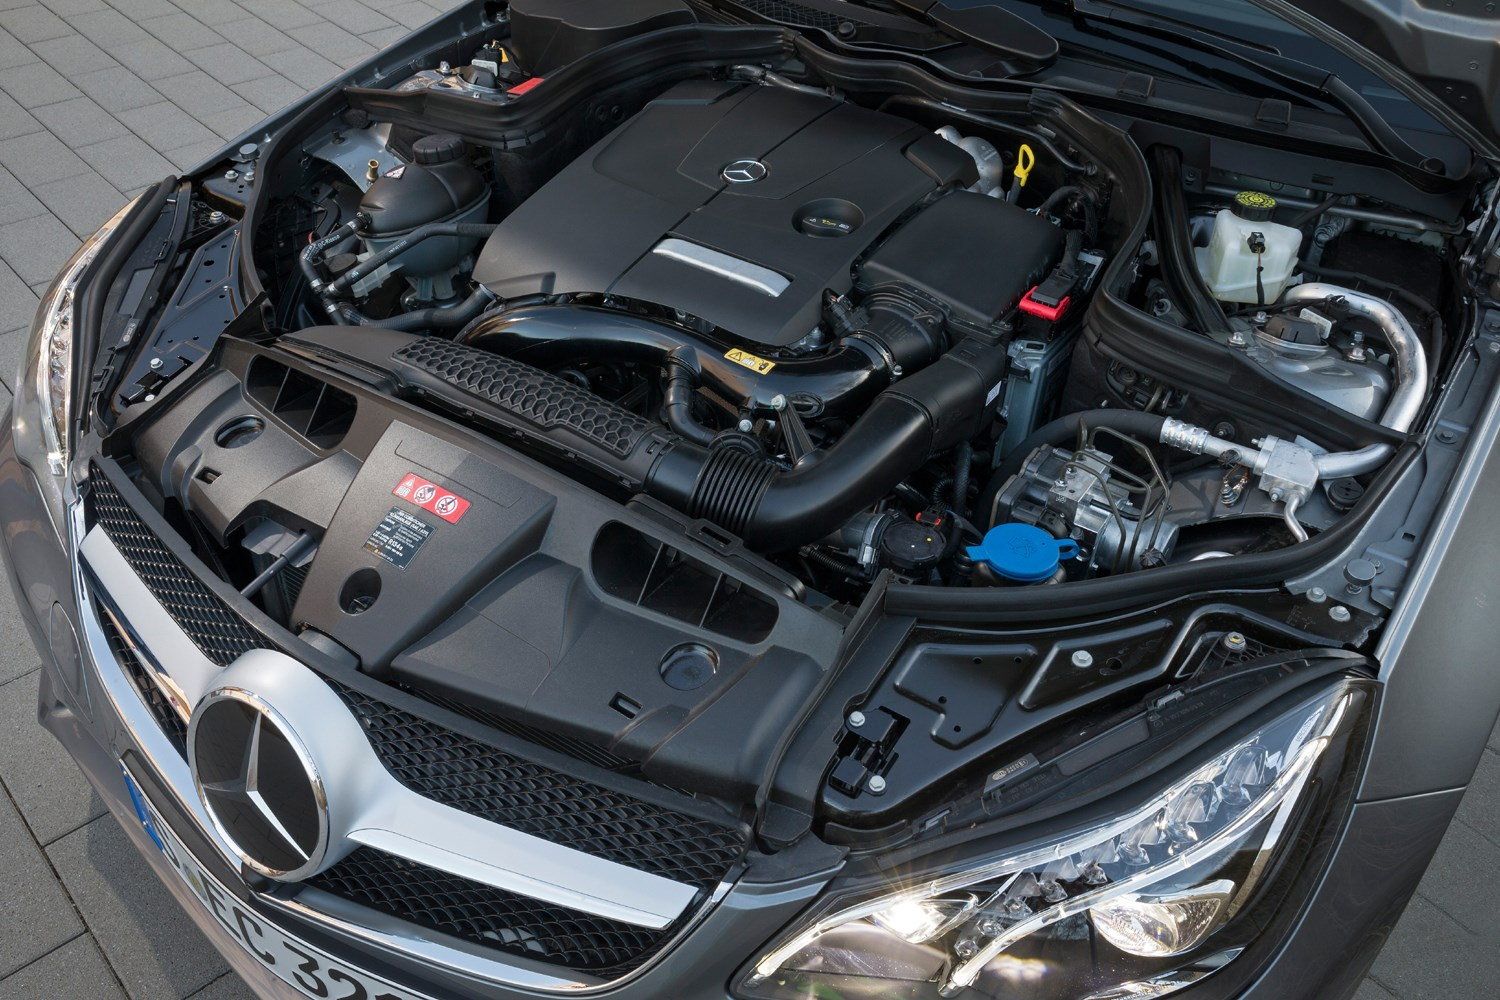 Mercedes benz e350 2009 engine specs mercedes free for Mercedes benz engines specifications